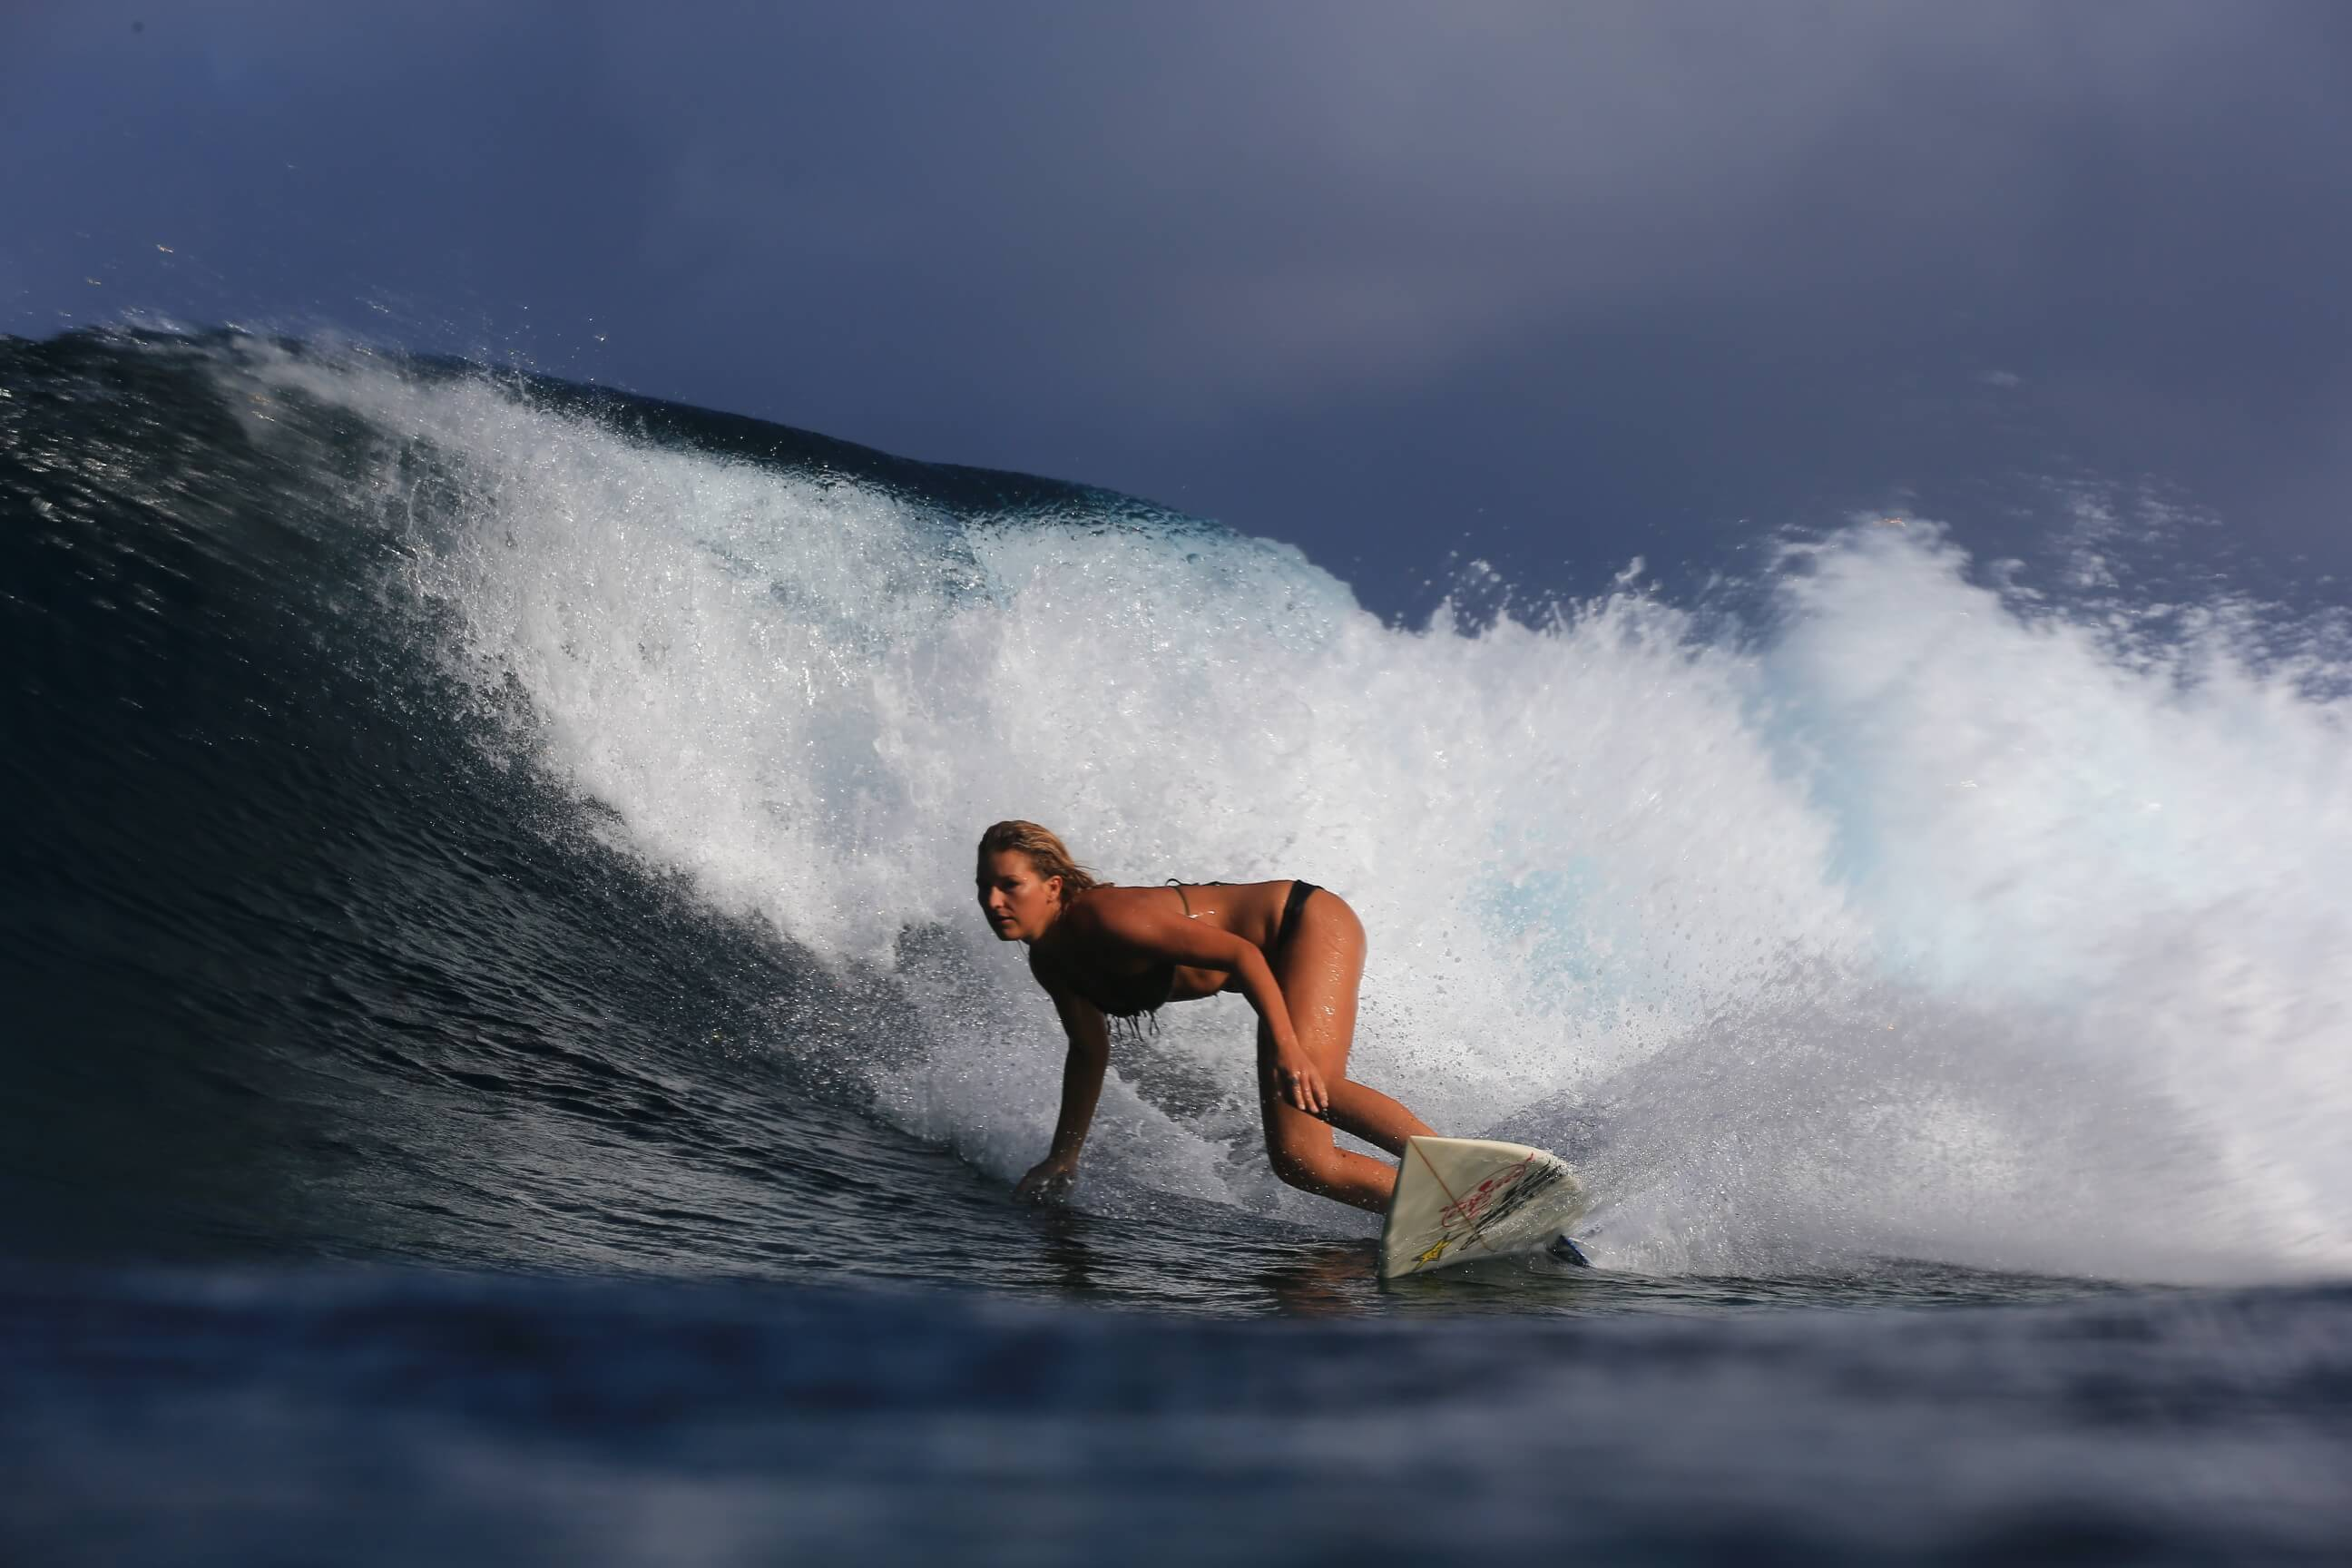 Surfing at Pohnpei Surf Club